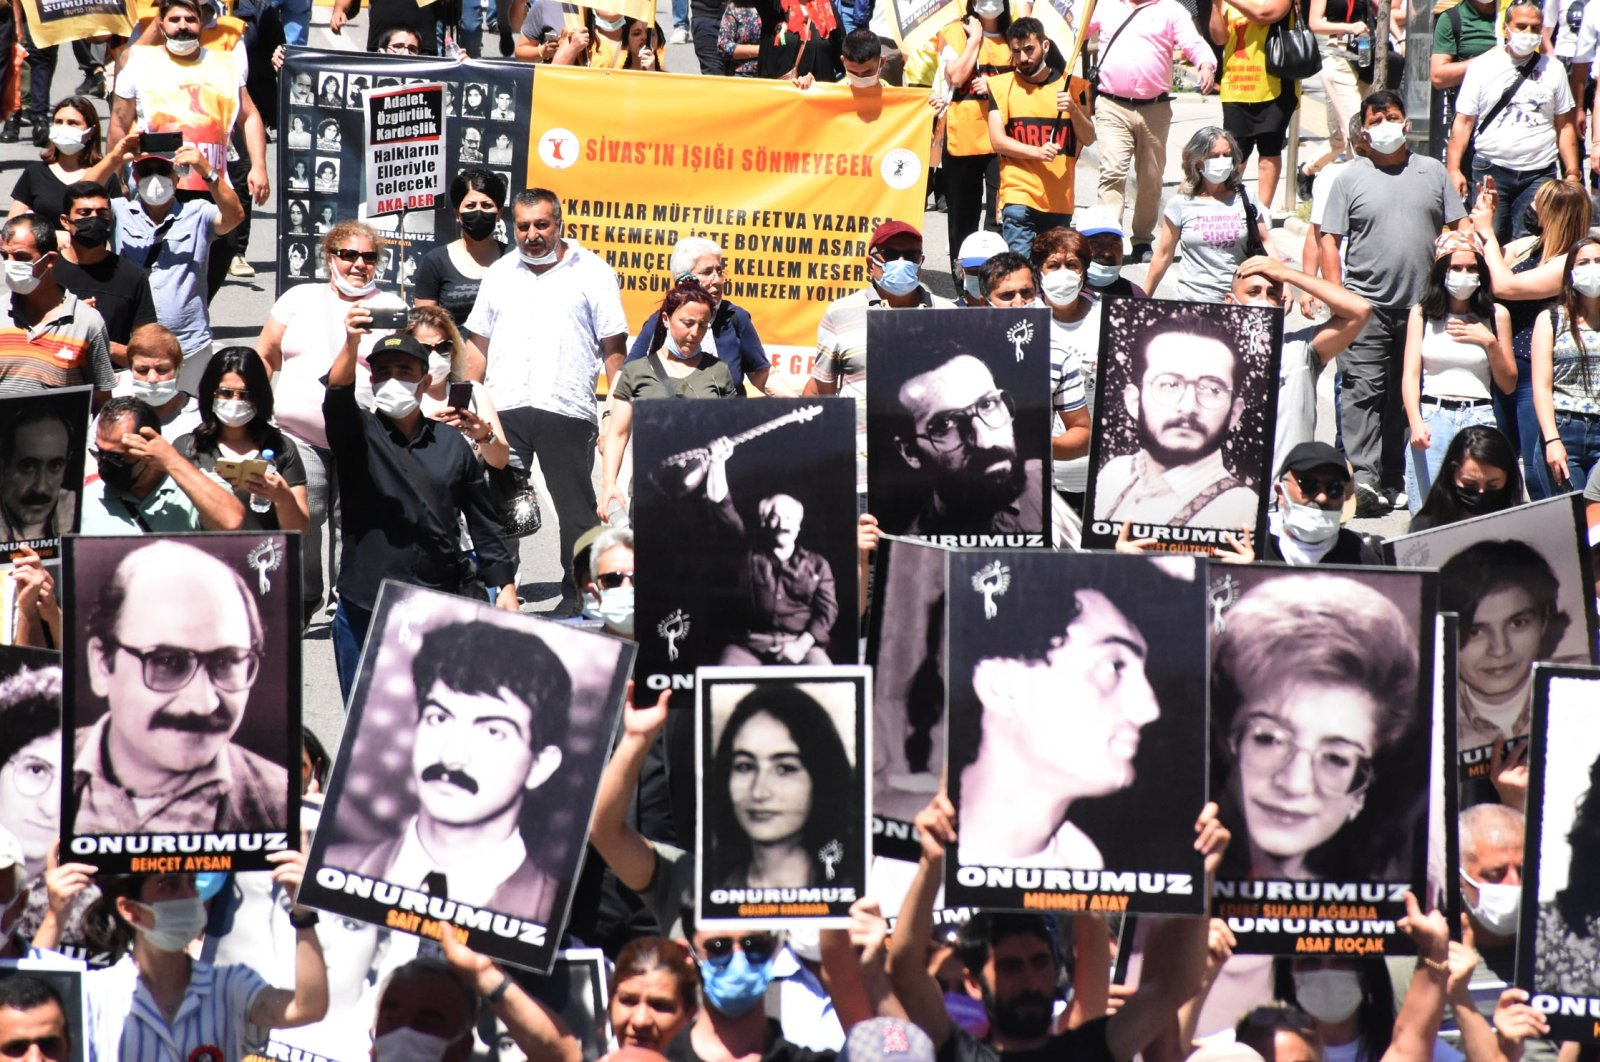 People hold pictures of the victims, during the commemoration ceremony in Sivas, central Turkey, July 2, 2021. (DHA PHOTO)